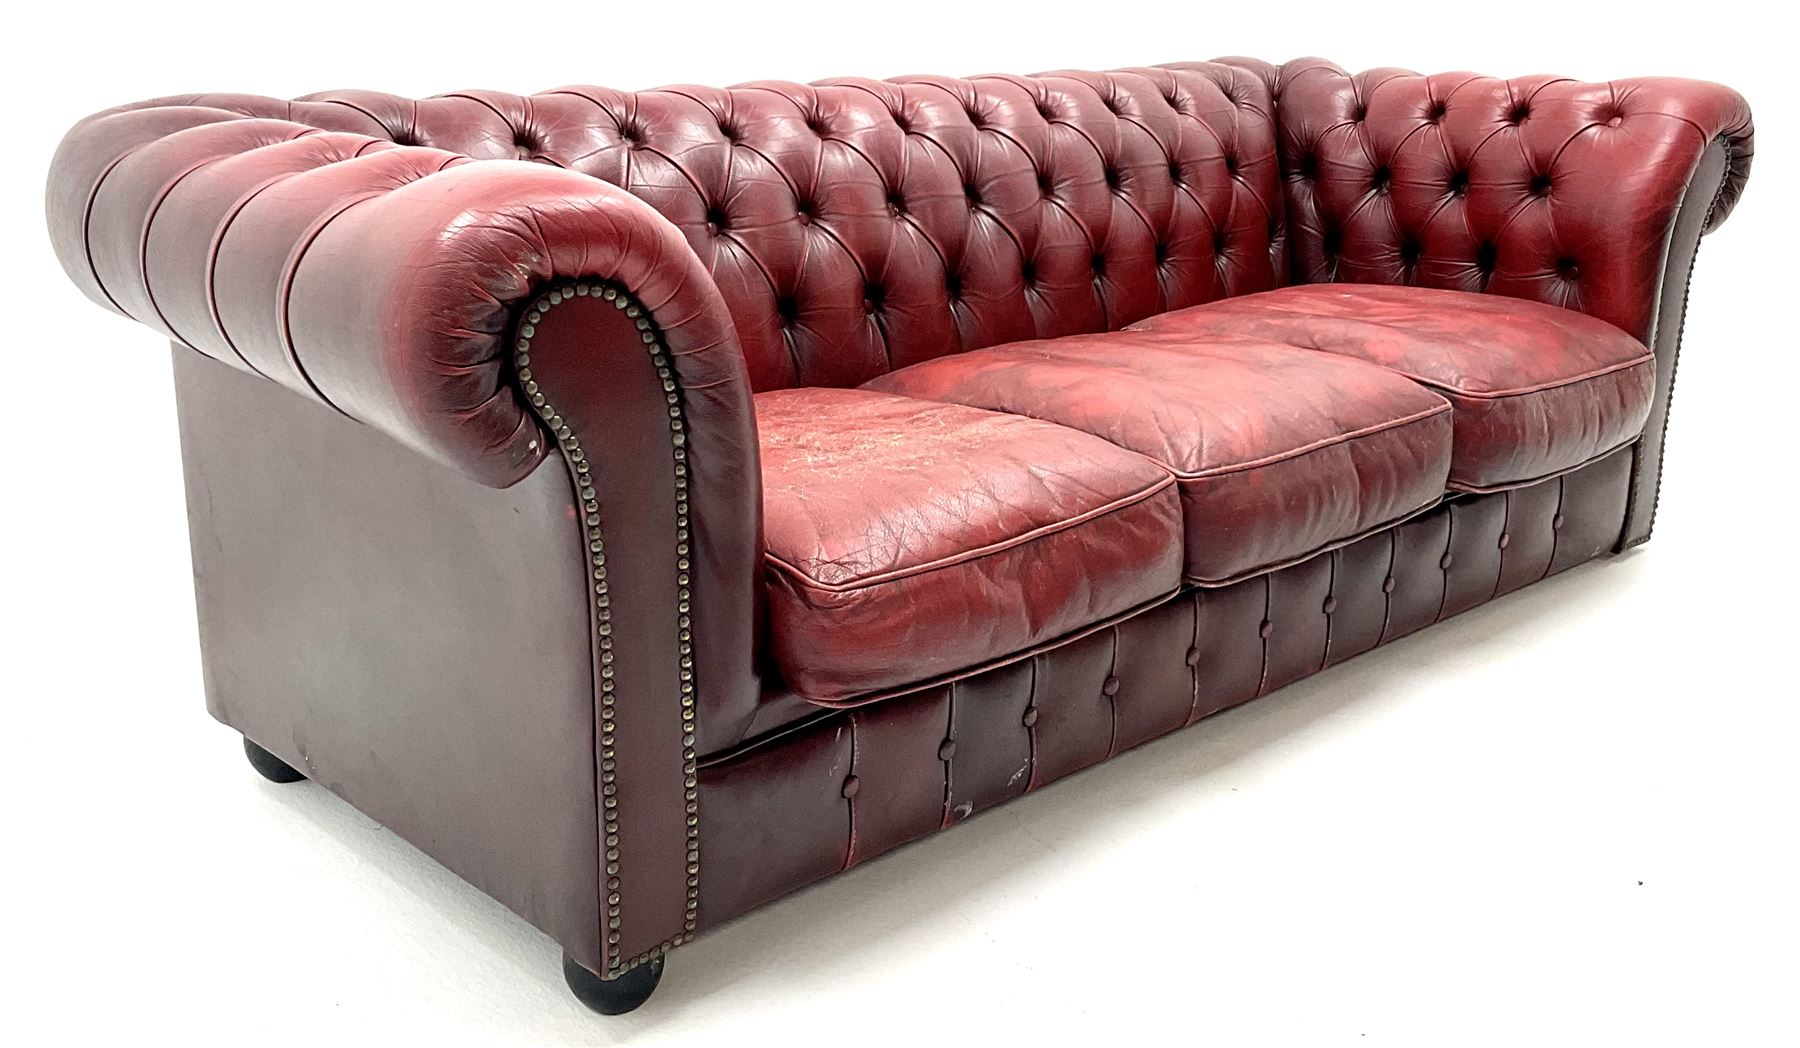 Three seat chesterfield sofa upholstered in deep buttoned ox blood studded leather - Image 3 of 4